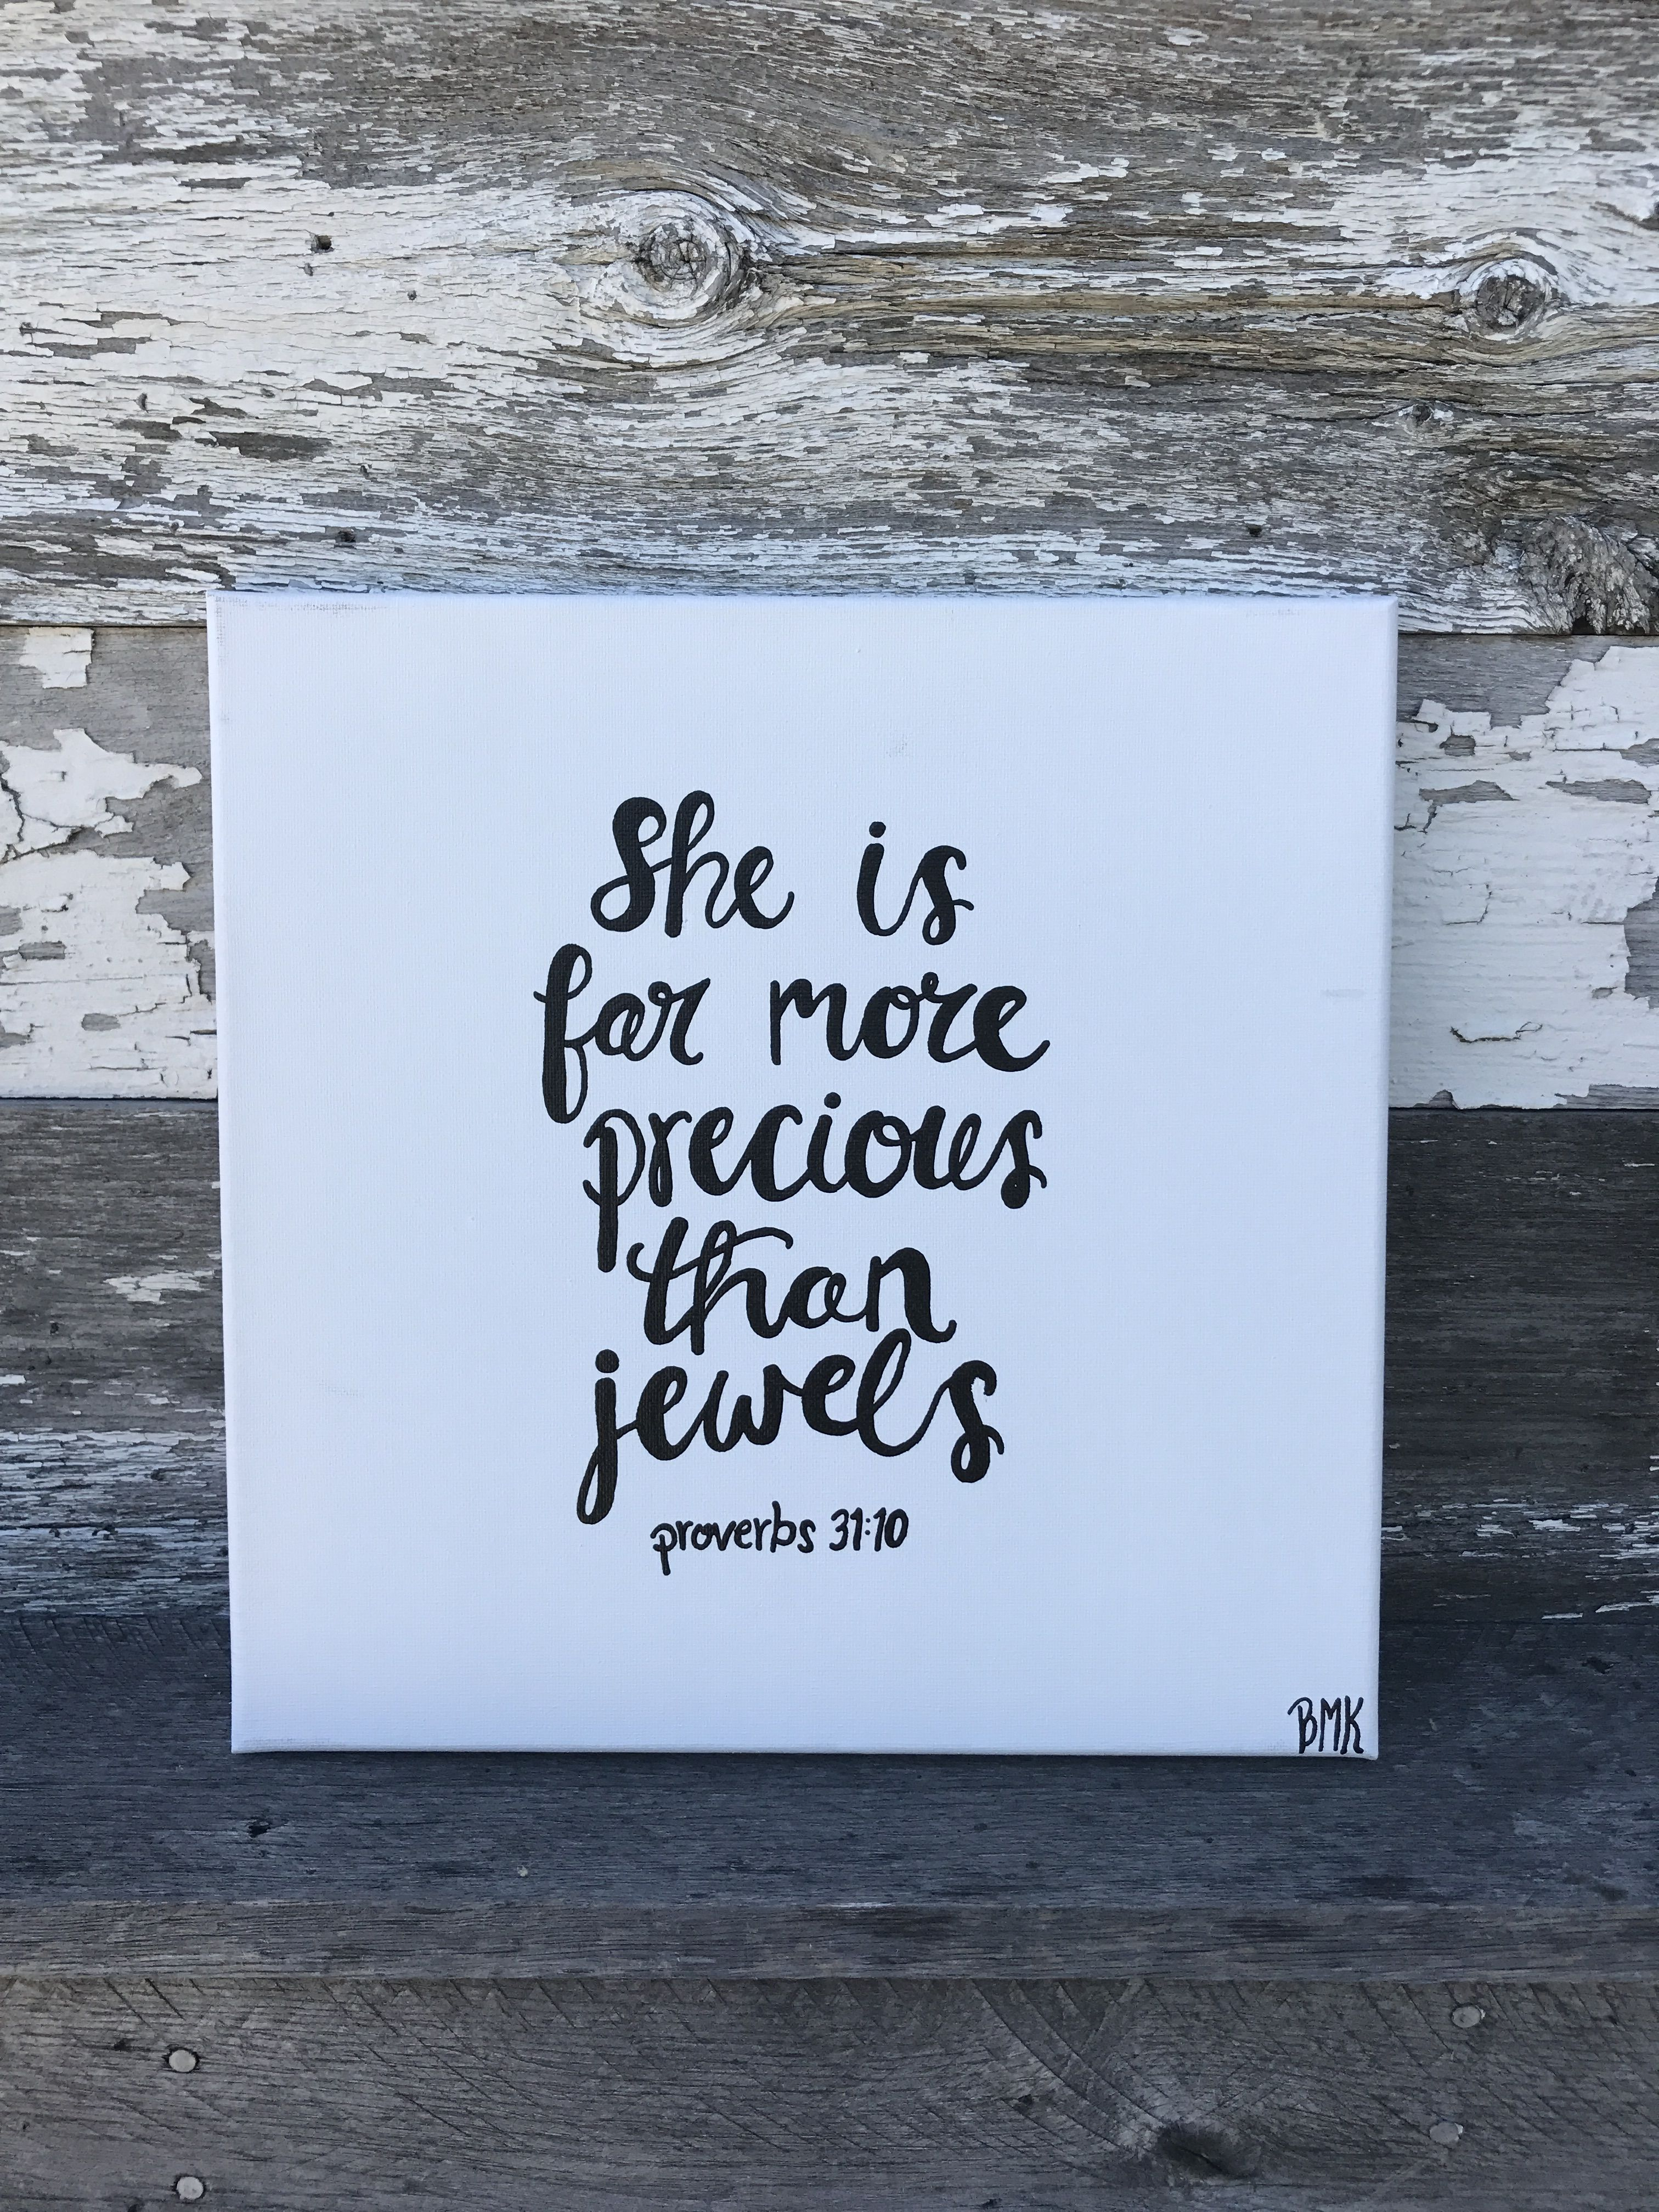 She is far more precious than jewels - Proverbs 31:10